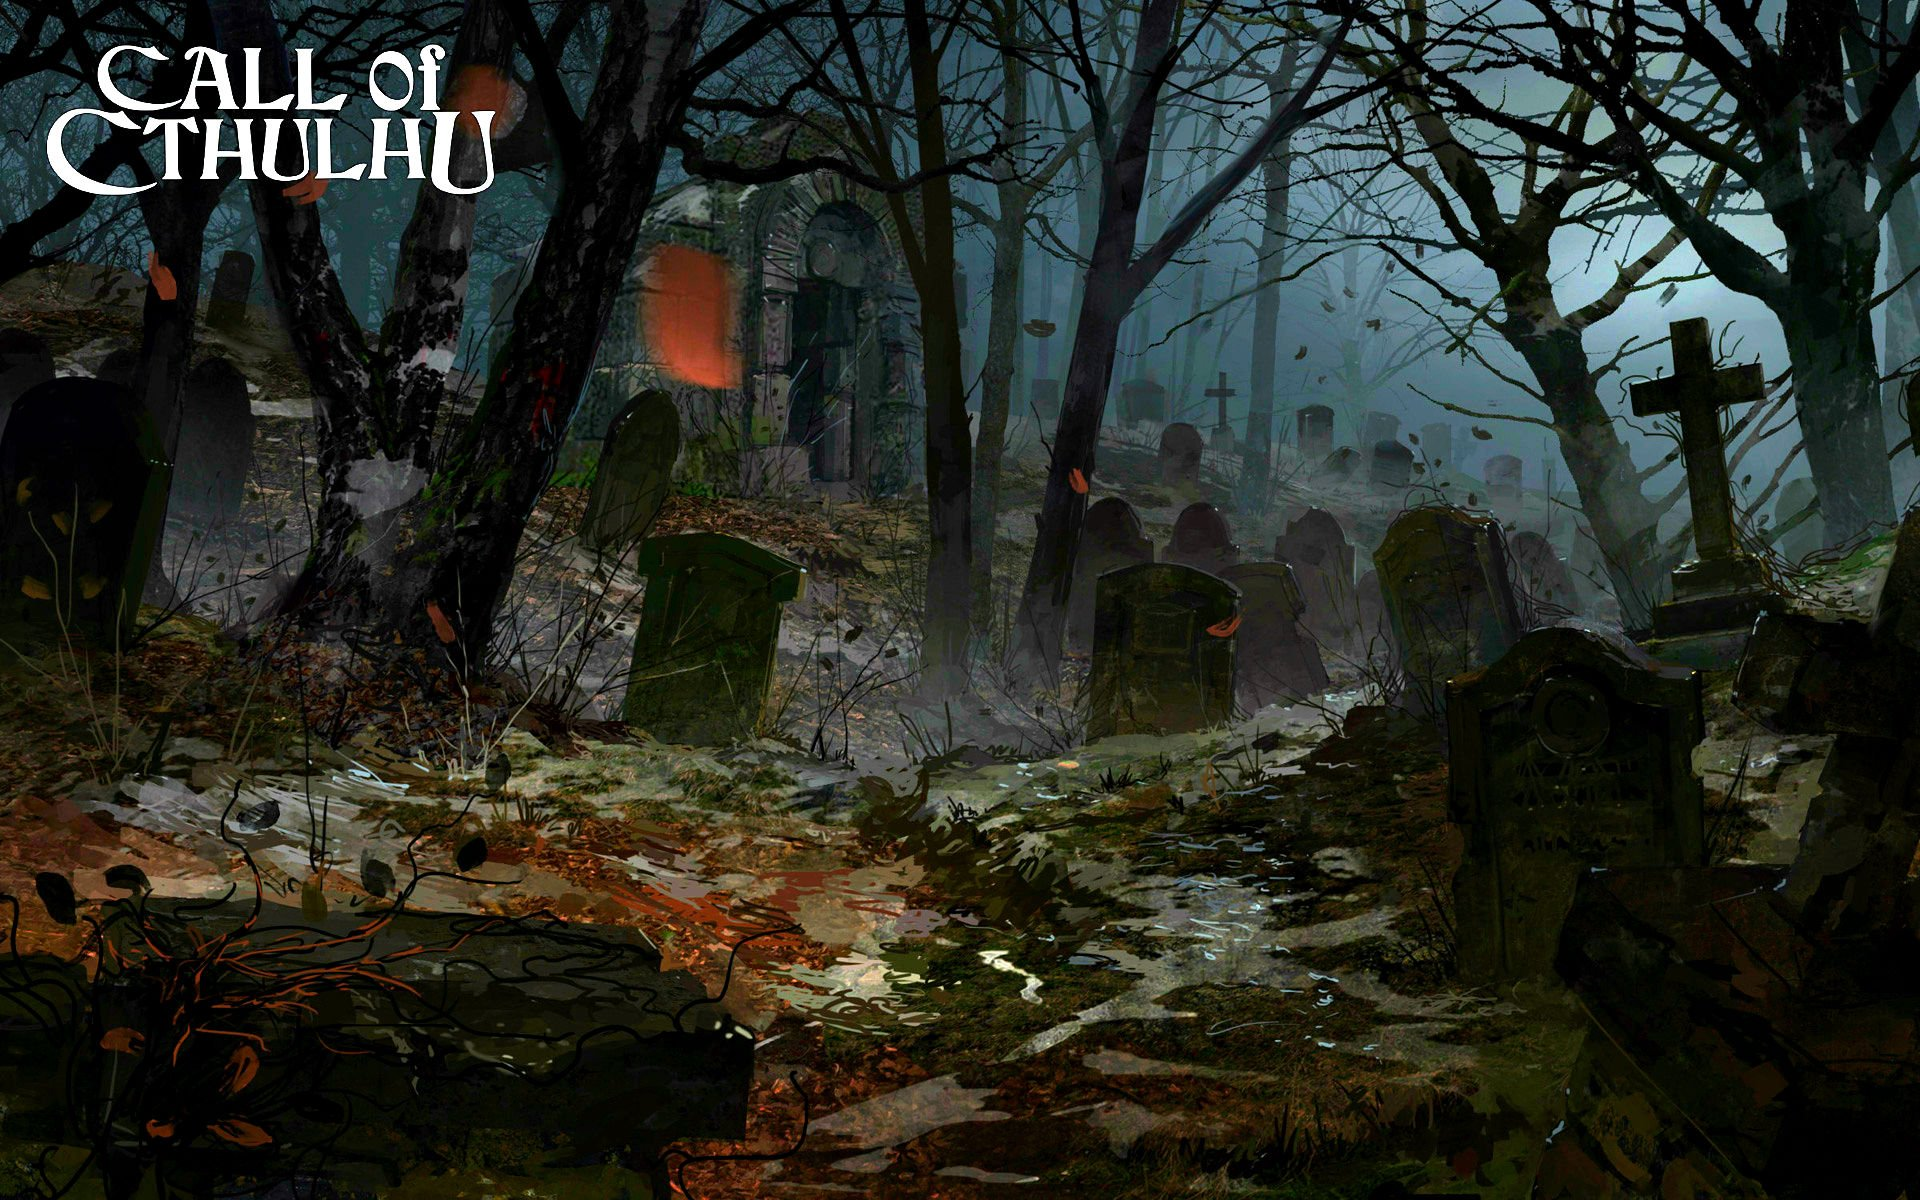 Call Of Cthulhu Receives Eerie New Images MonsterVine